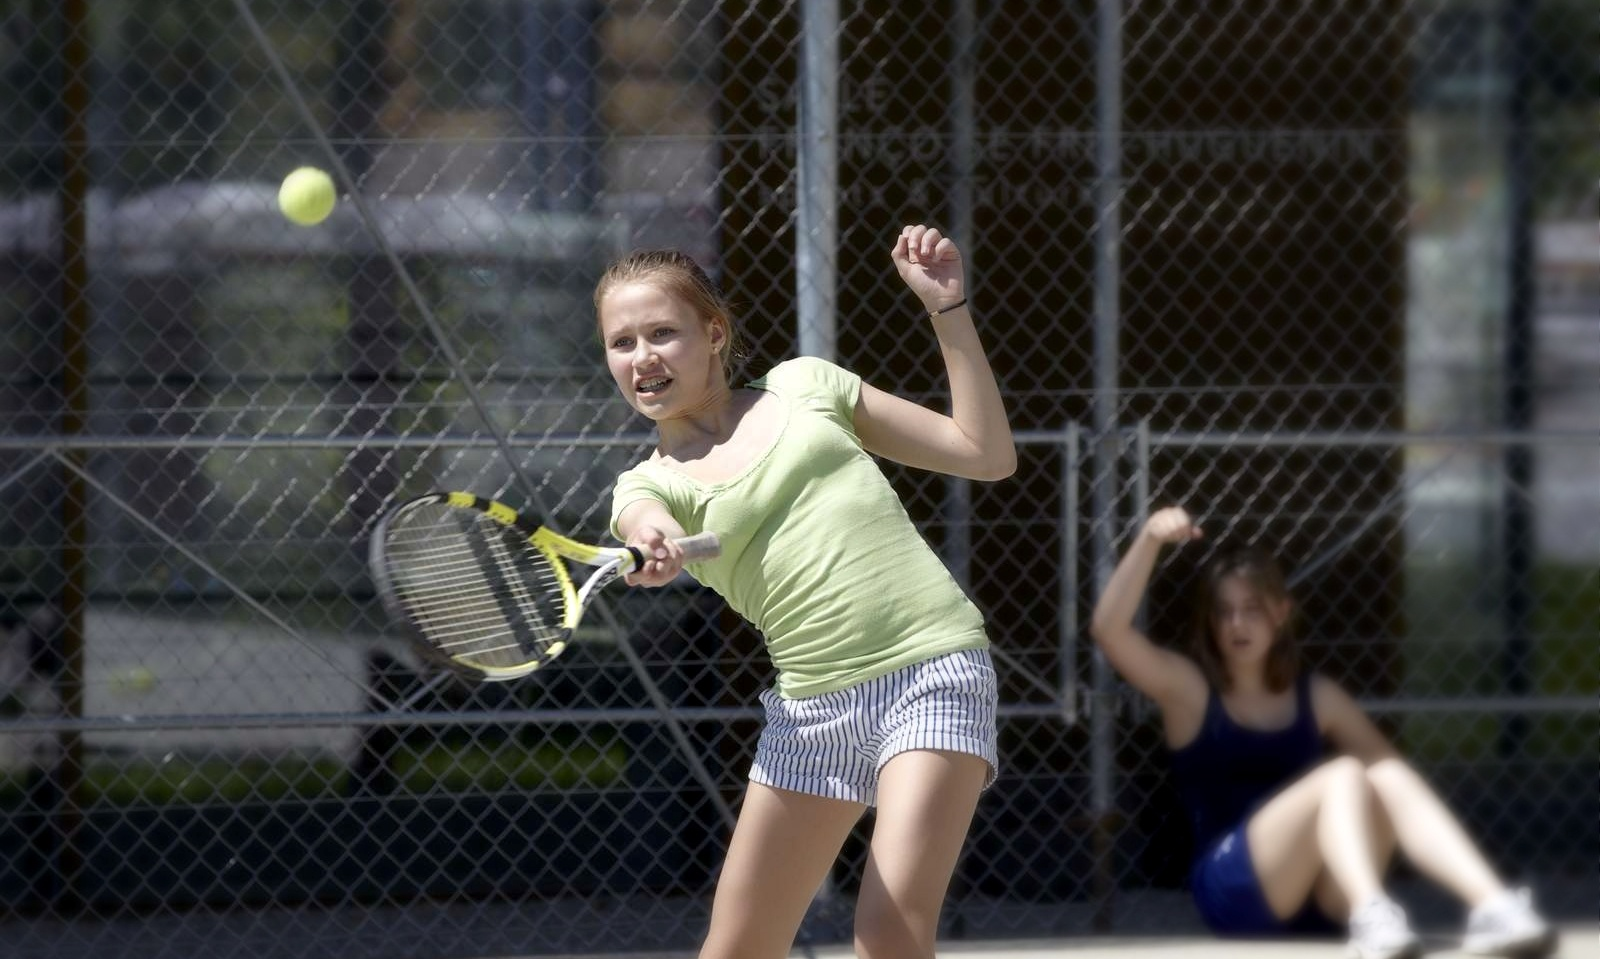 brillantmont summer tennis